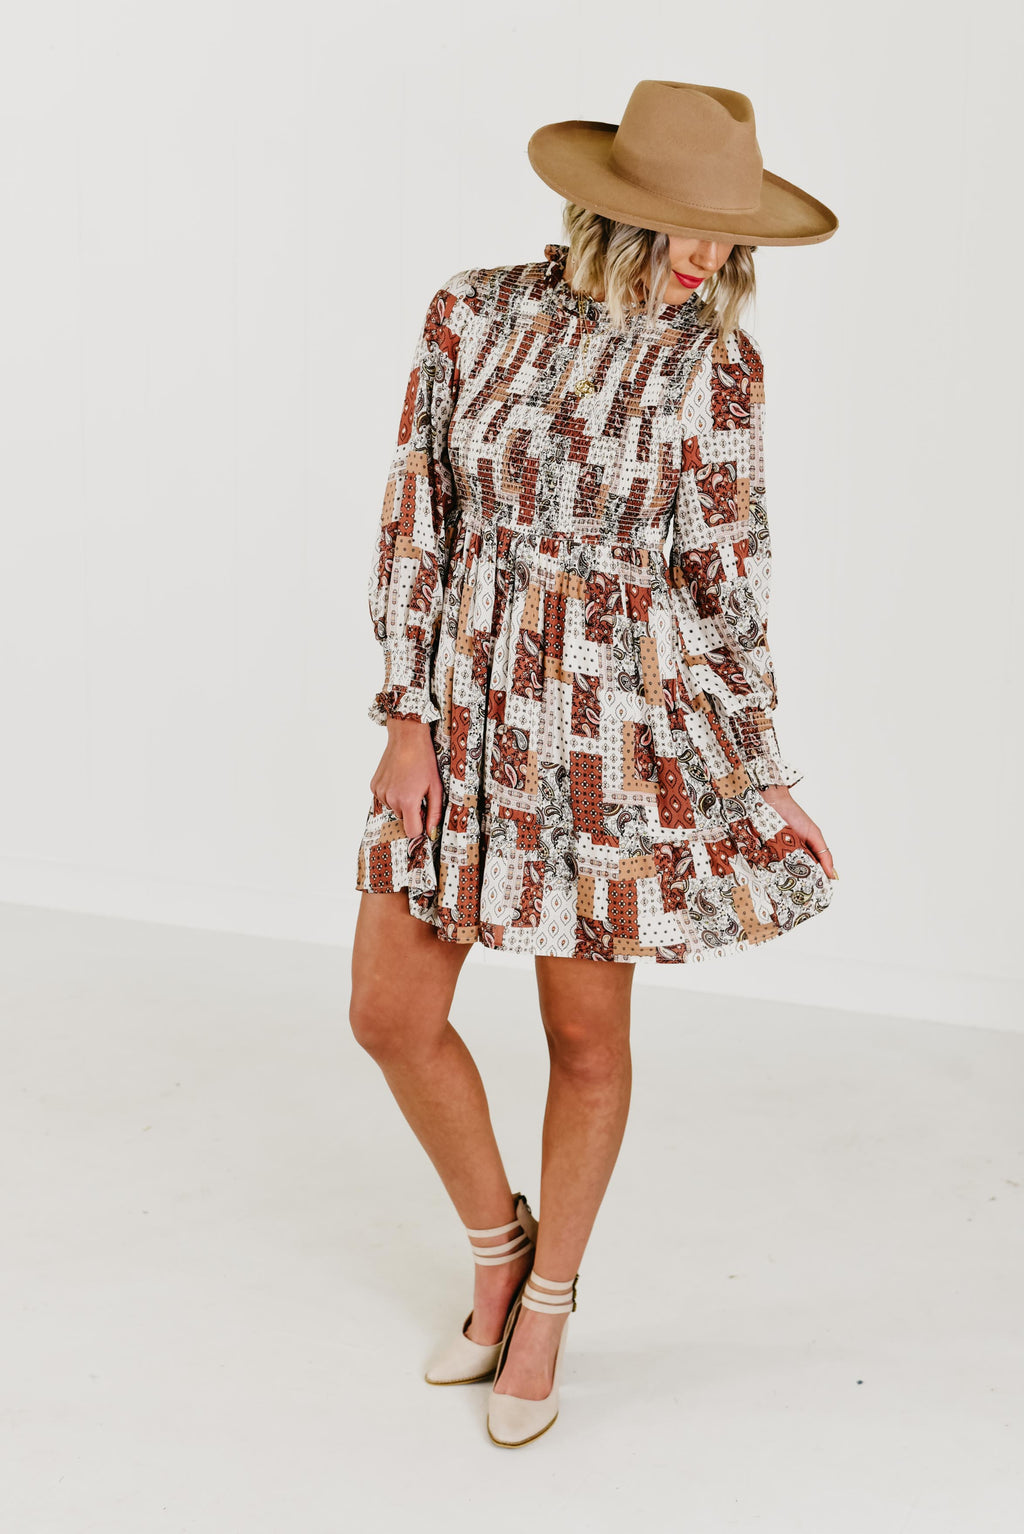 The Savannah Smocked Patchwork Dress - Multi